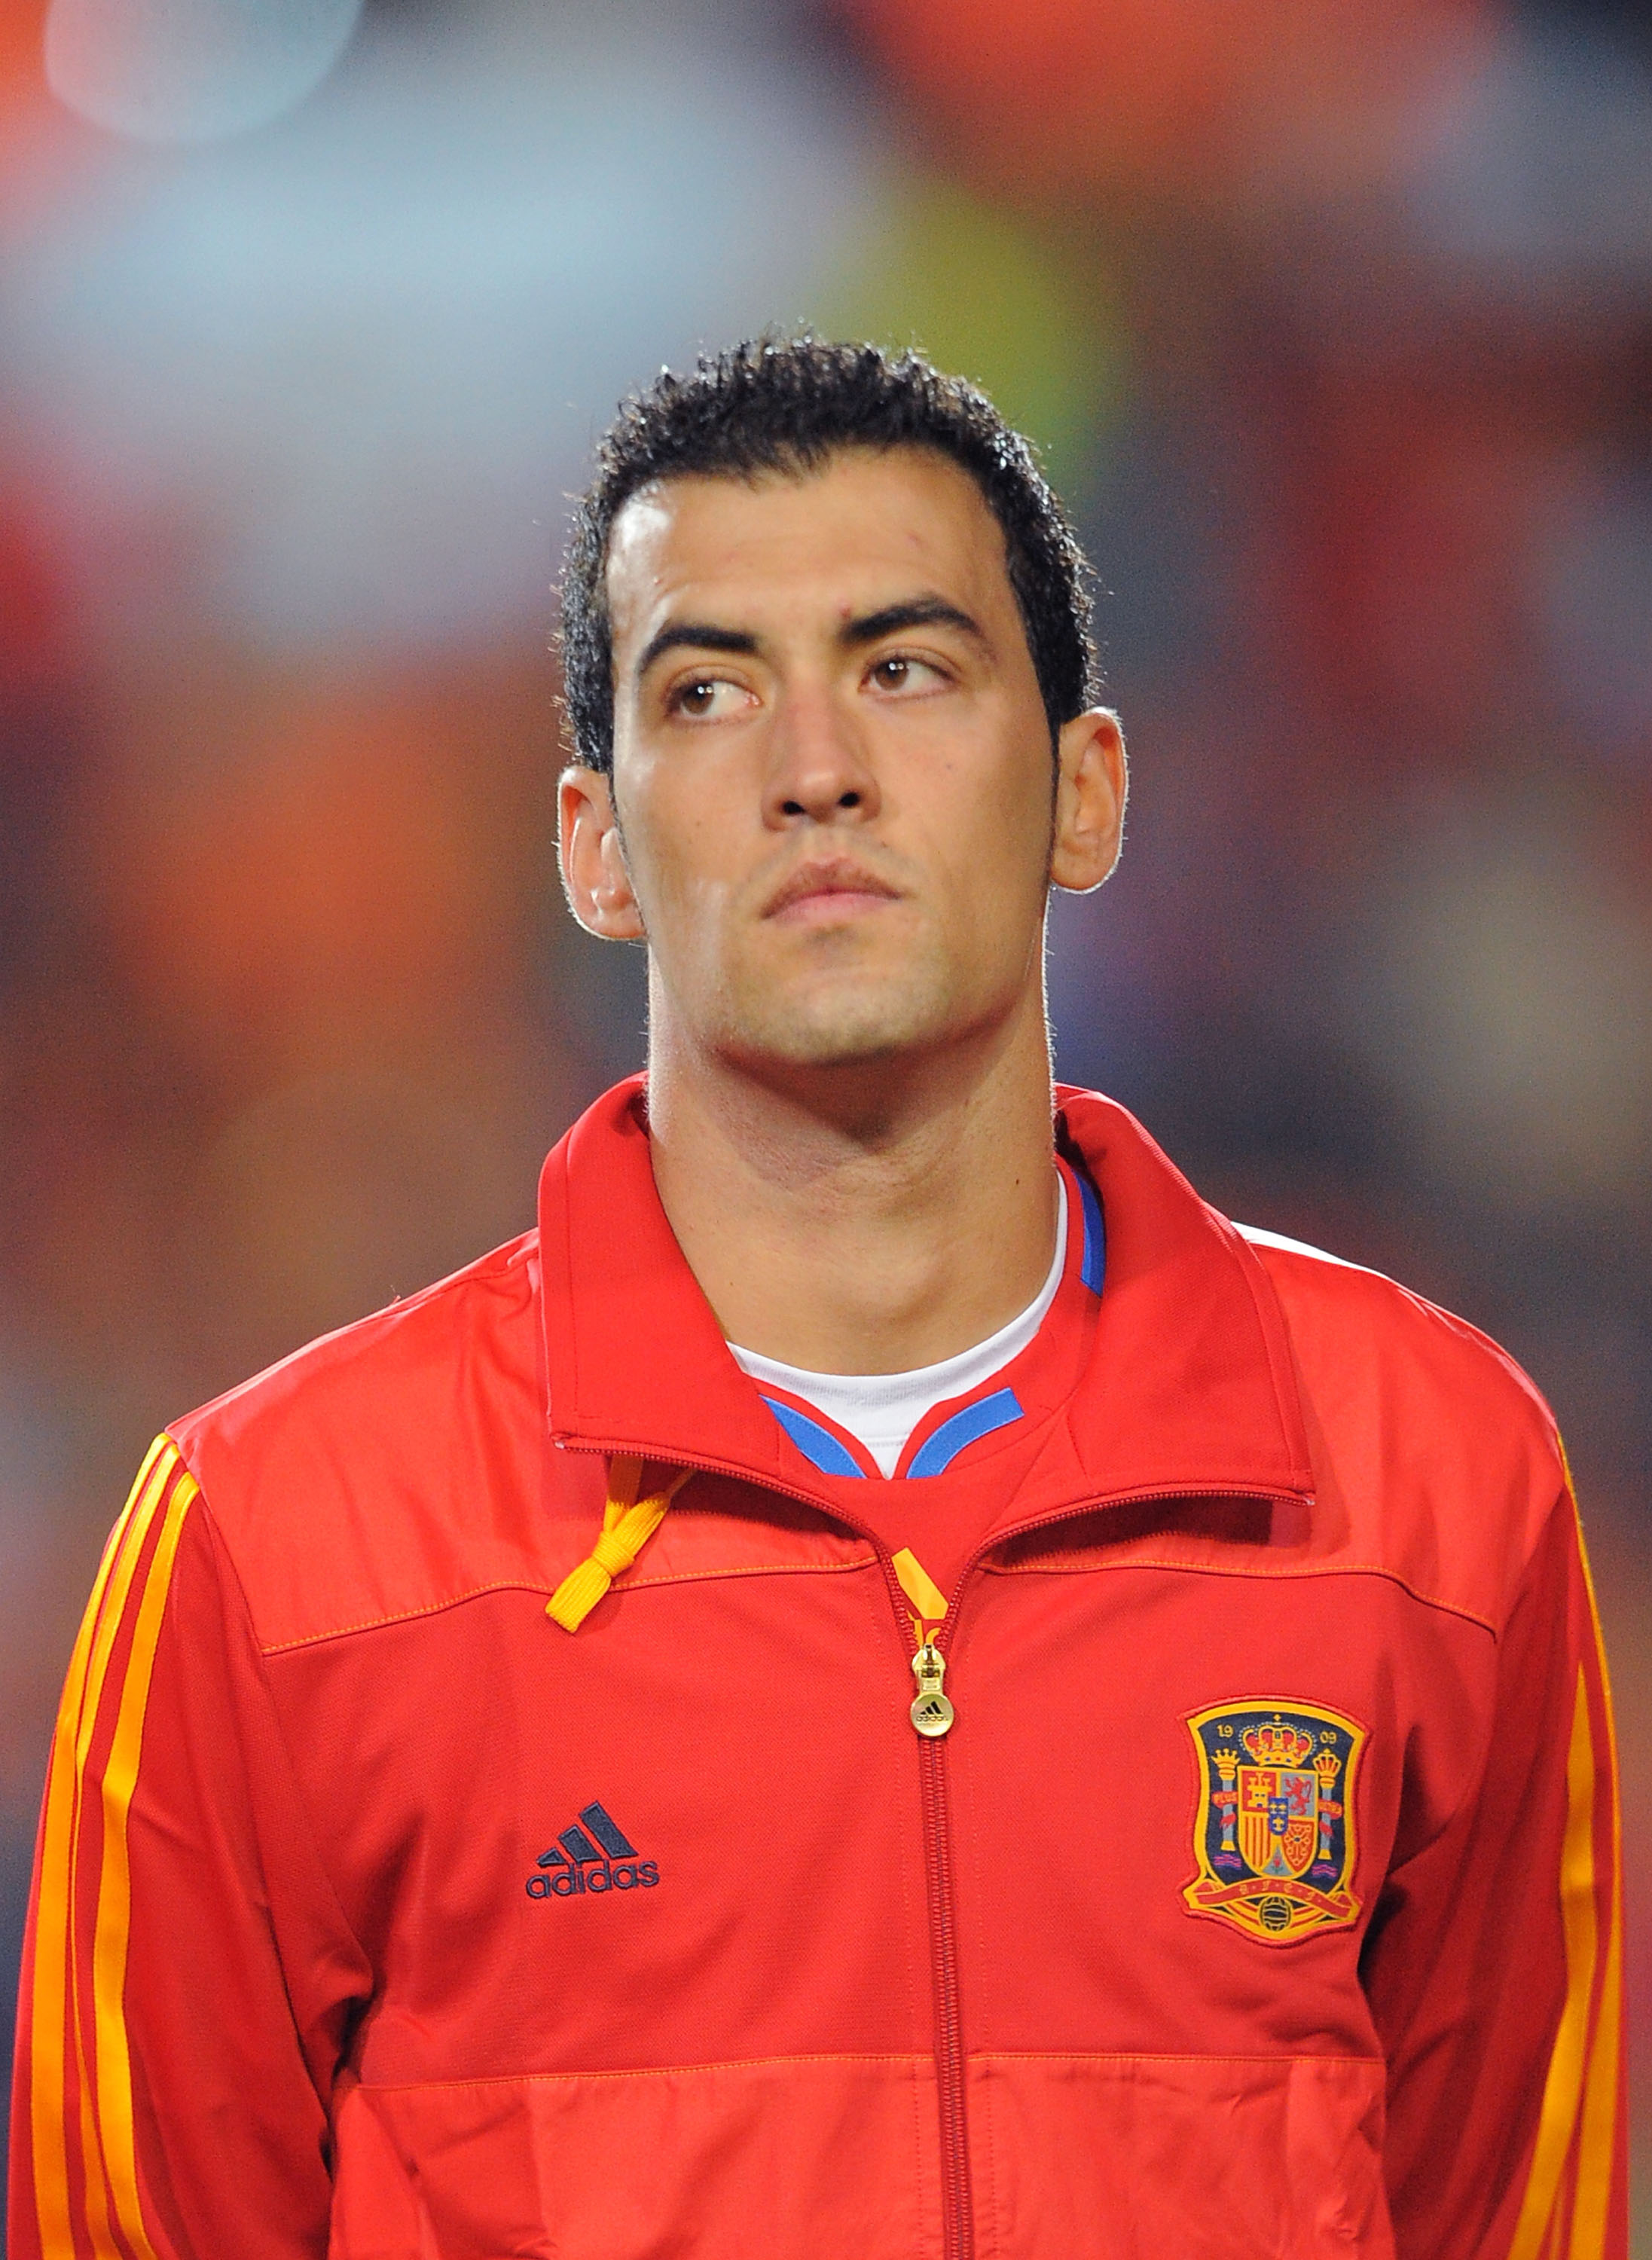 SALAMANCA, SPAIN - OCTOBER 08: Sergio Busquets  of Spain listens to his country's national anthem before the the EURO 2012 Qualifying Group I match between Spain and Lithuania at the Helmantico stadium on October 8, 2010 in Salamanca, Spain.  (Photo by De